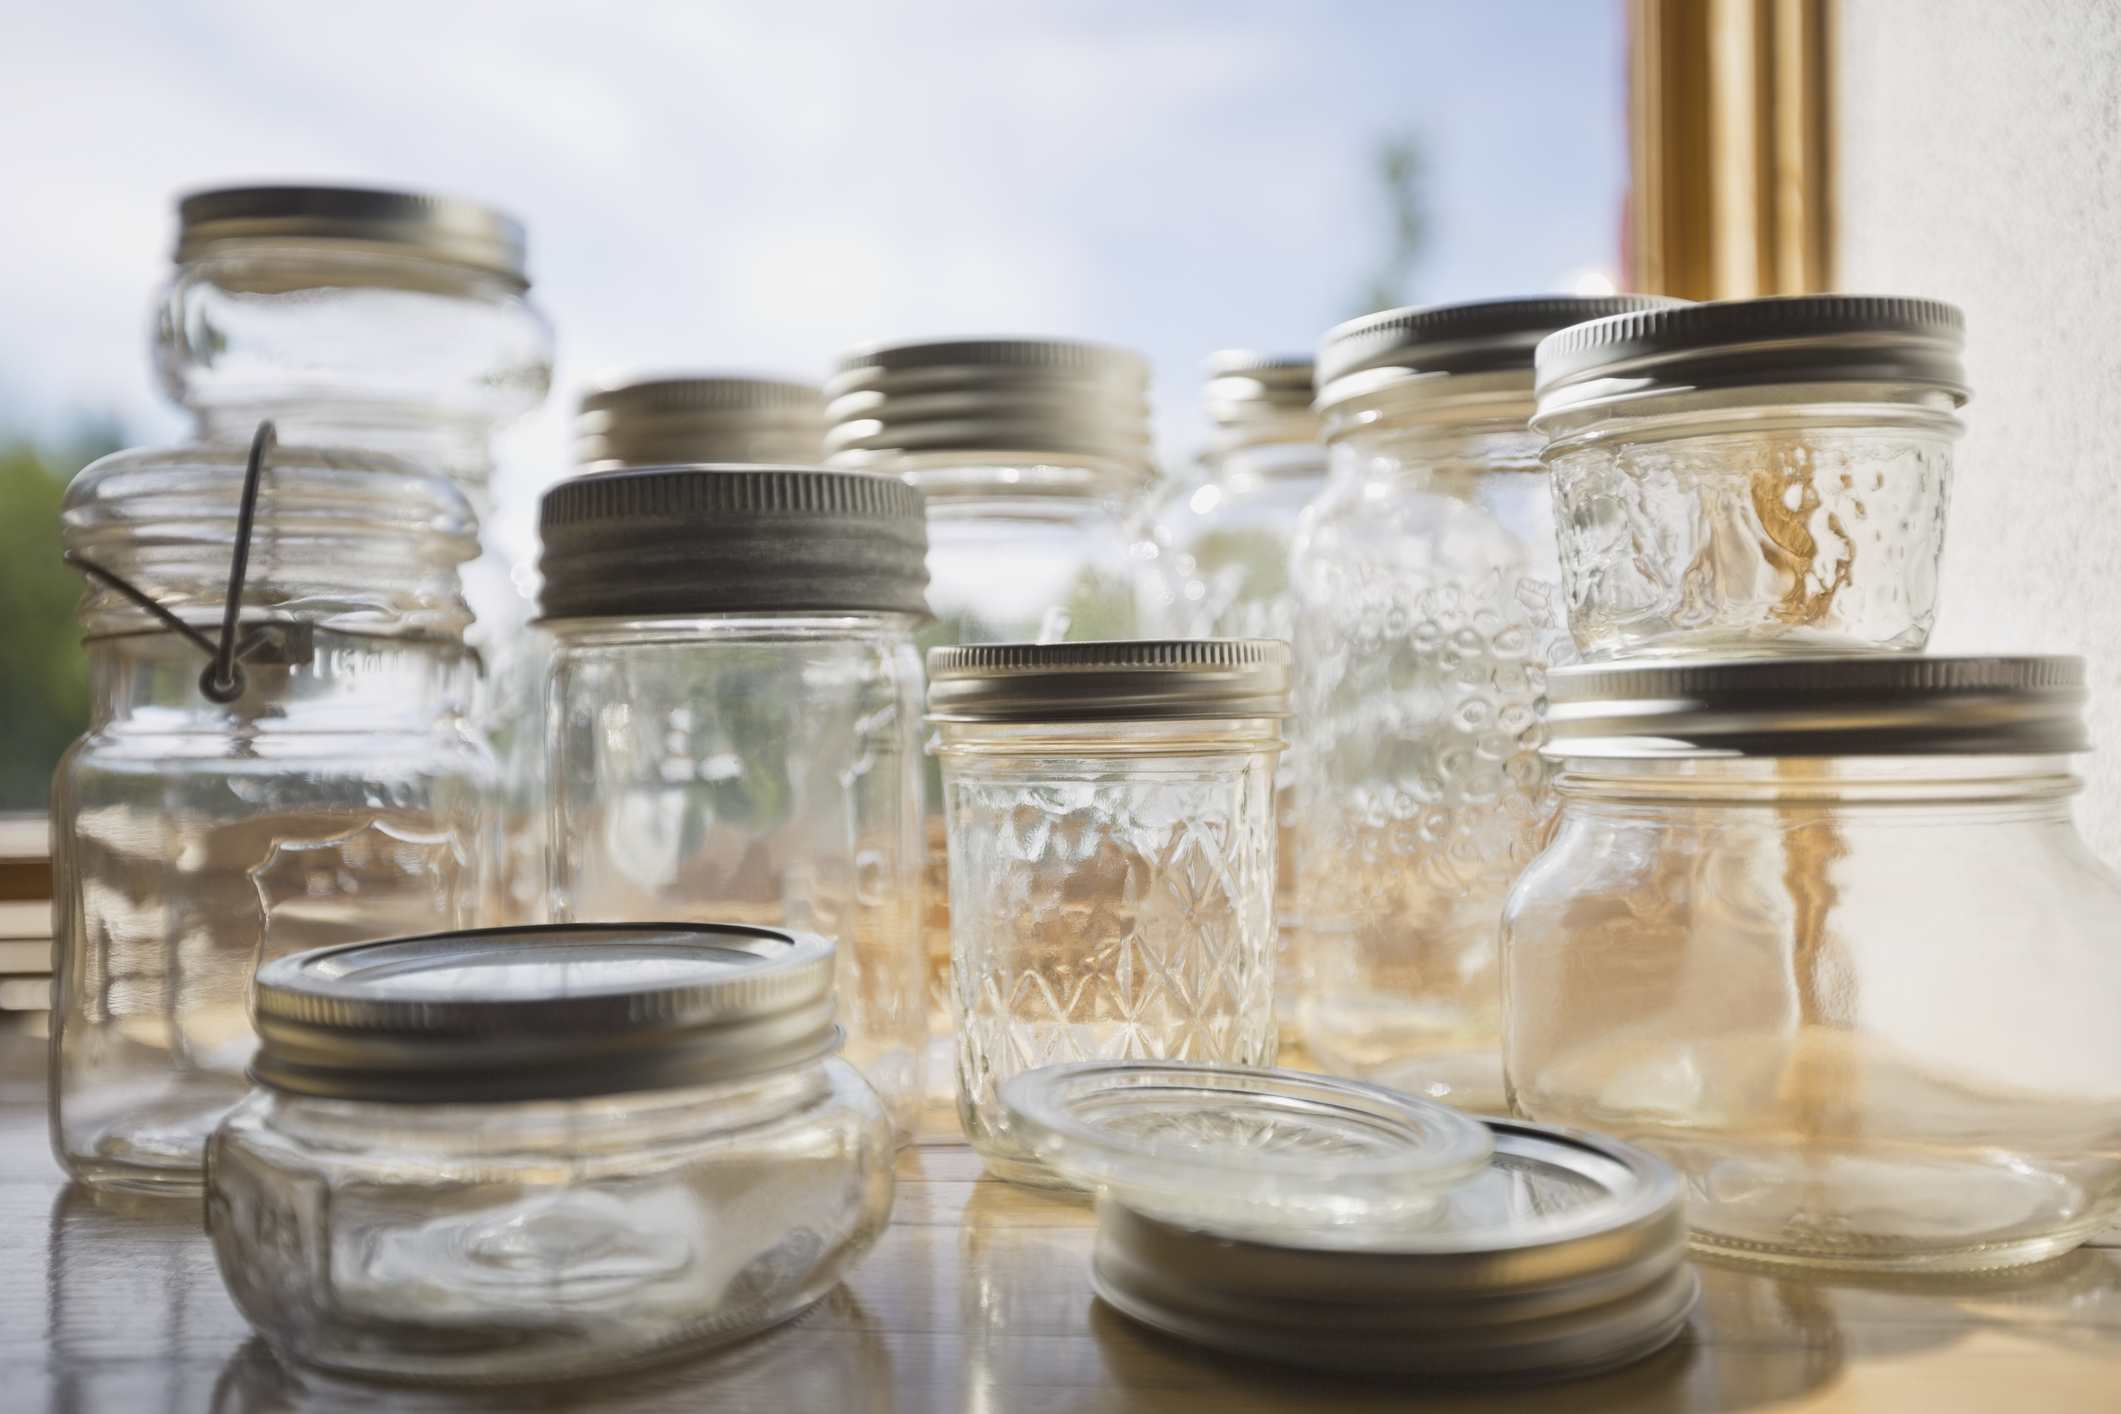 Clean canning jars